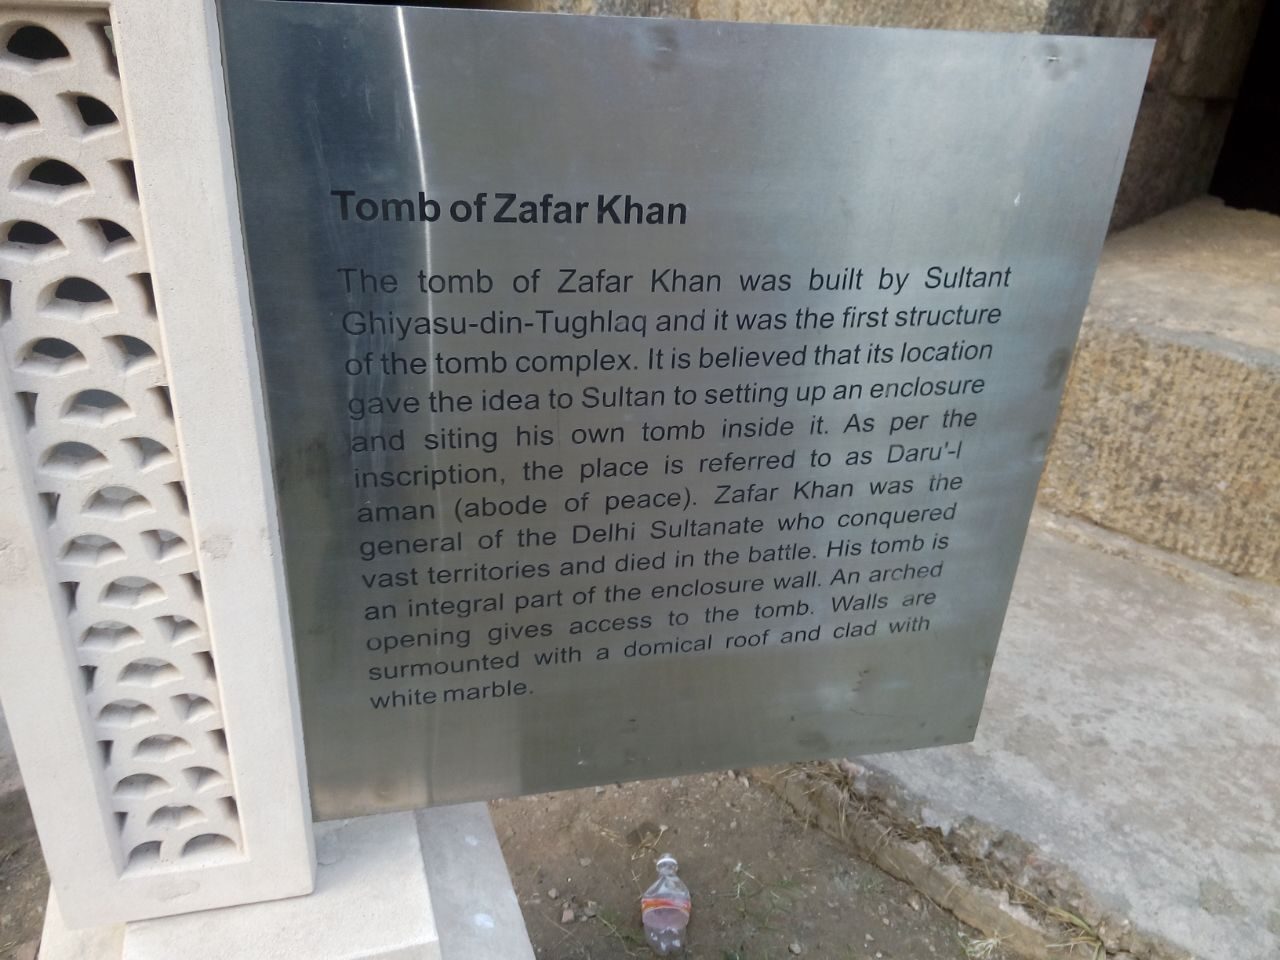 Description of Zafar Khan's Tomb